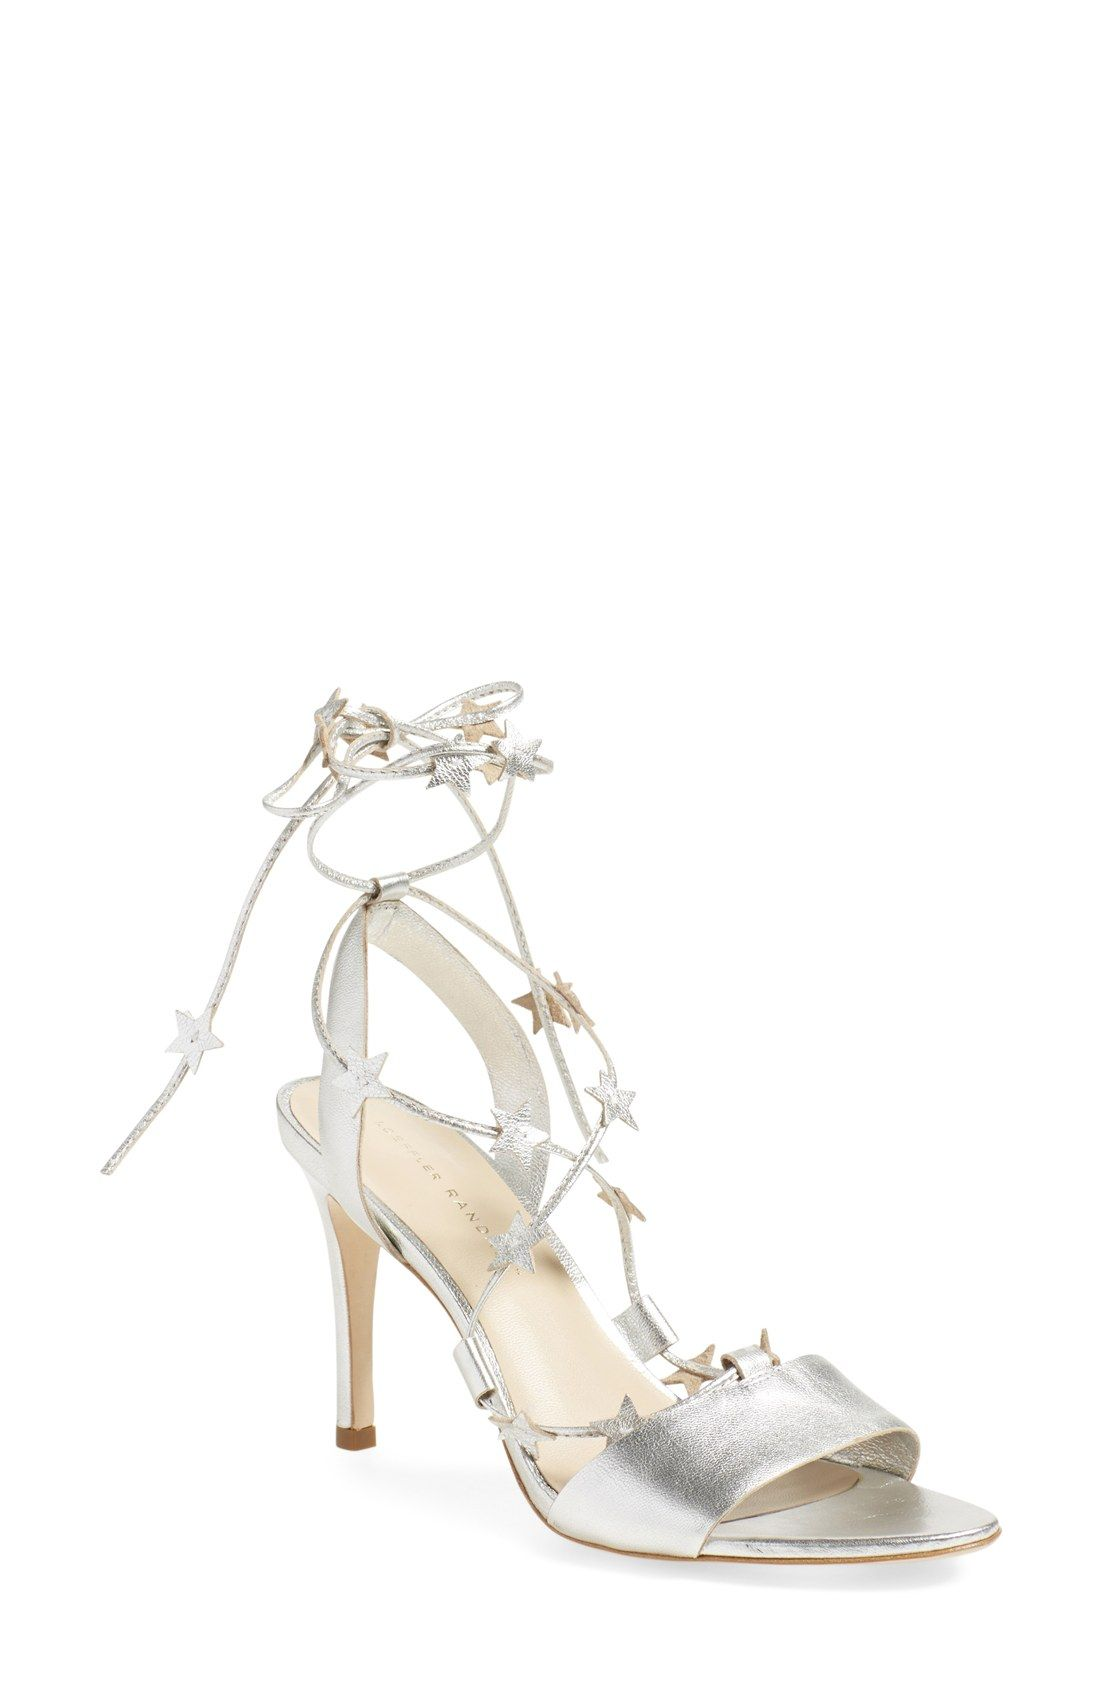 Let little gleaming stars adorn your ankles with these adorable ankle wrap sandals from Loeffler.